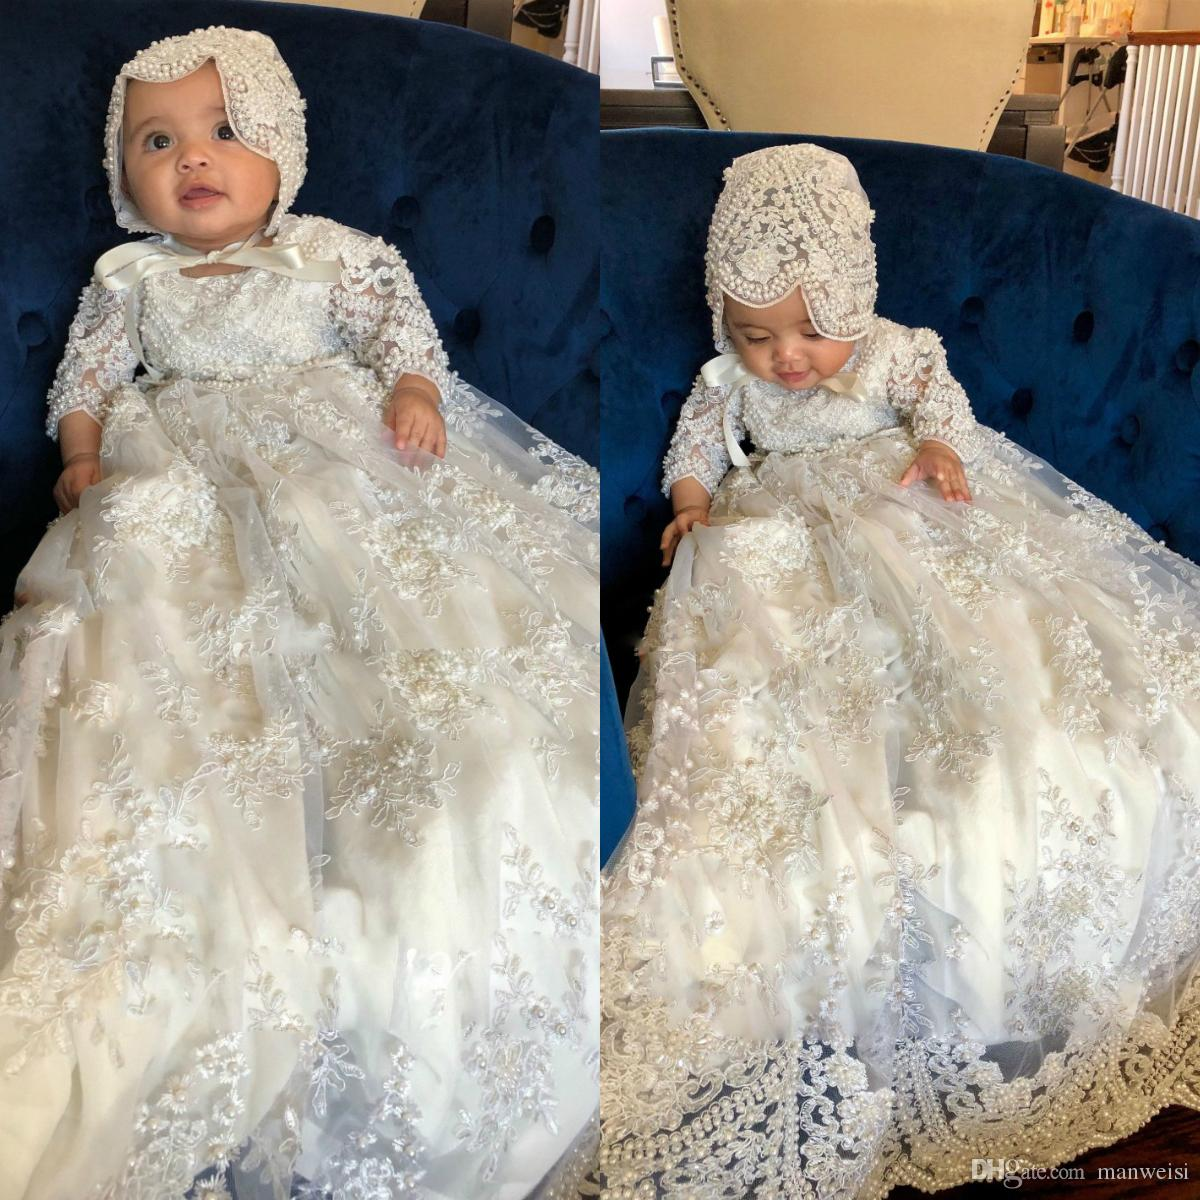 Classy 2019 Long Sleeve Christening Gowns For Baby Girls Lace Appliqued Pearls Baptism Dresses With Bonnet First Communication Dress